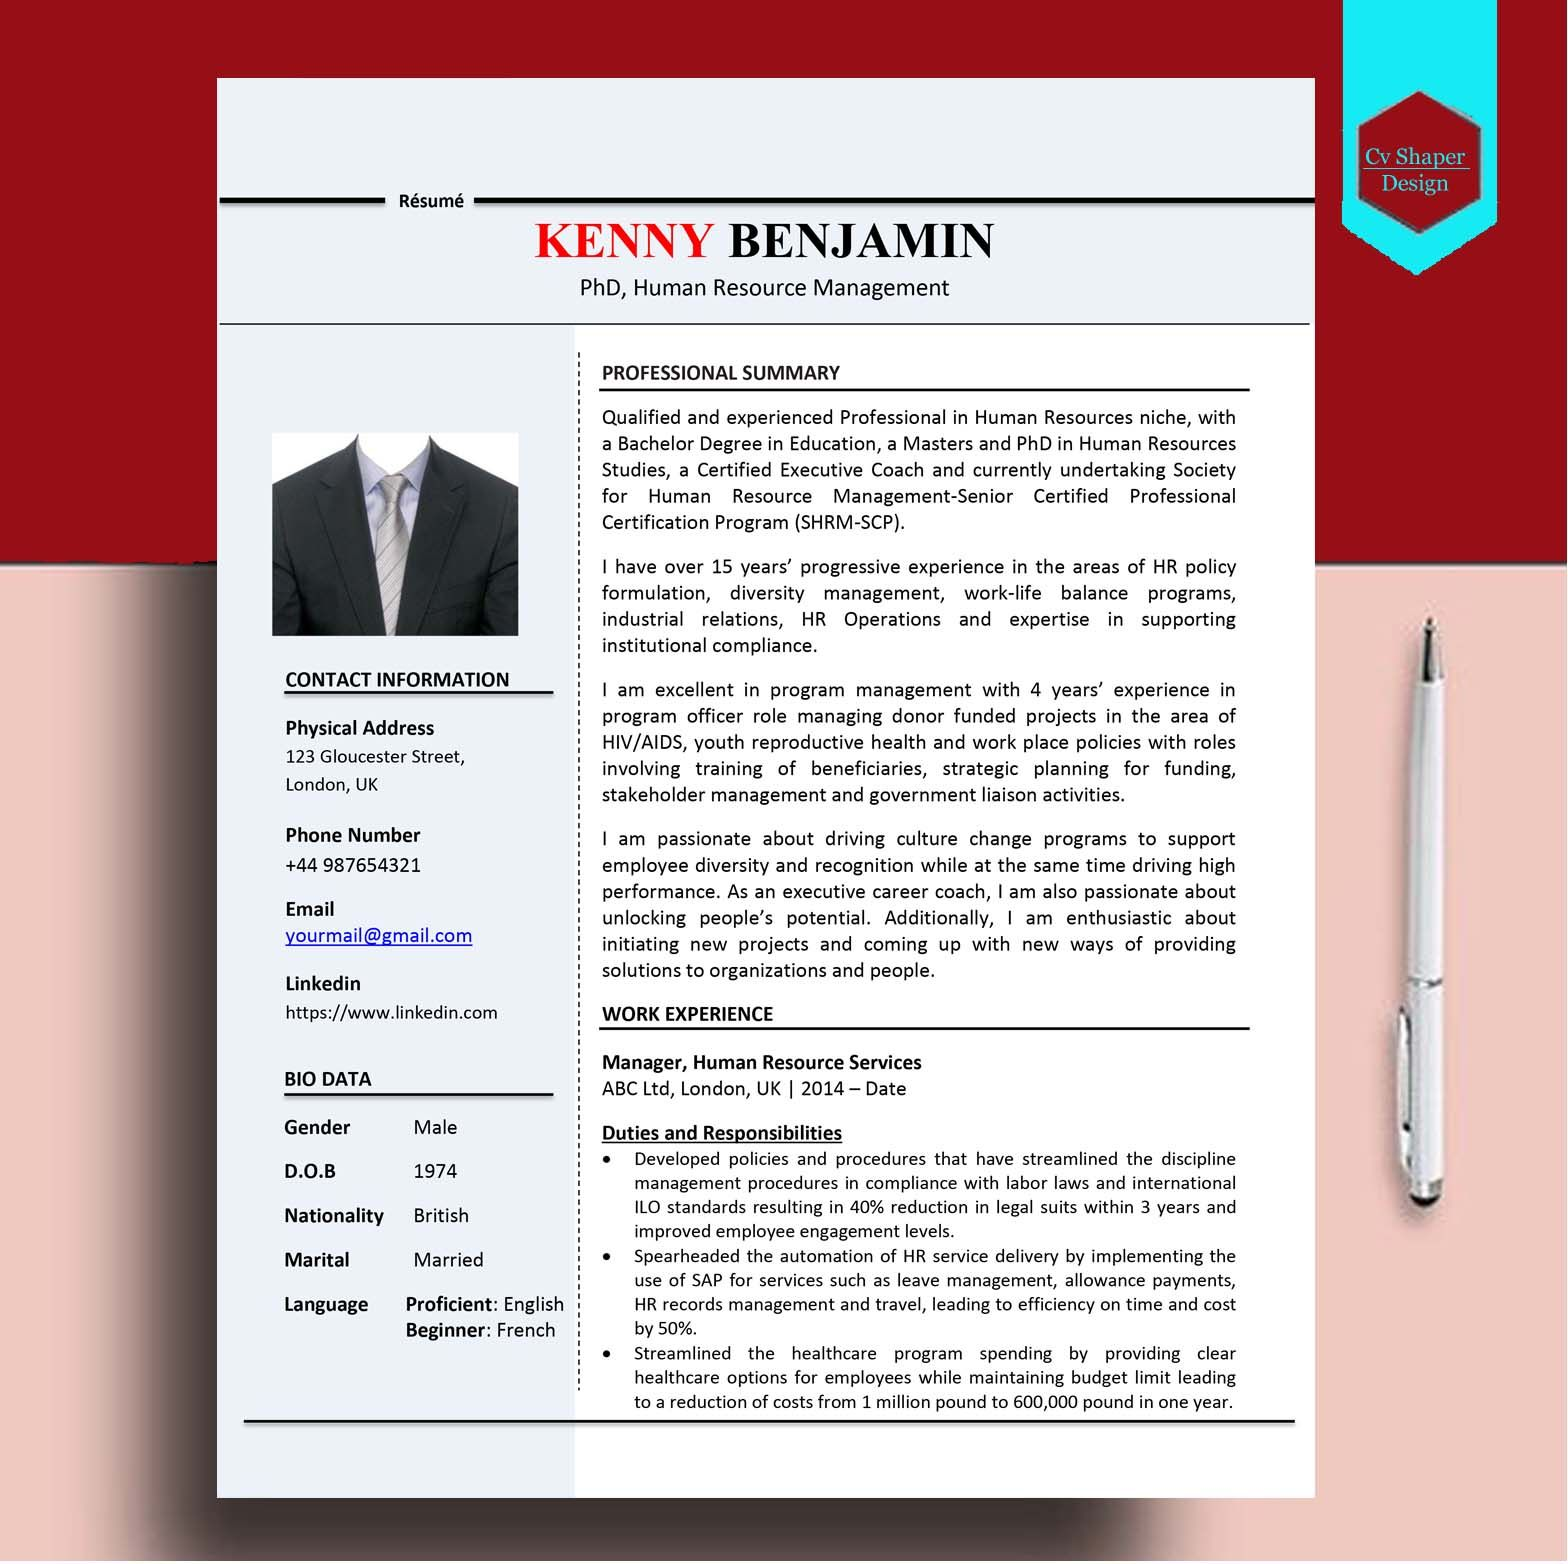 Download this human resource manager cv sample and edit